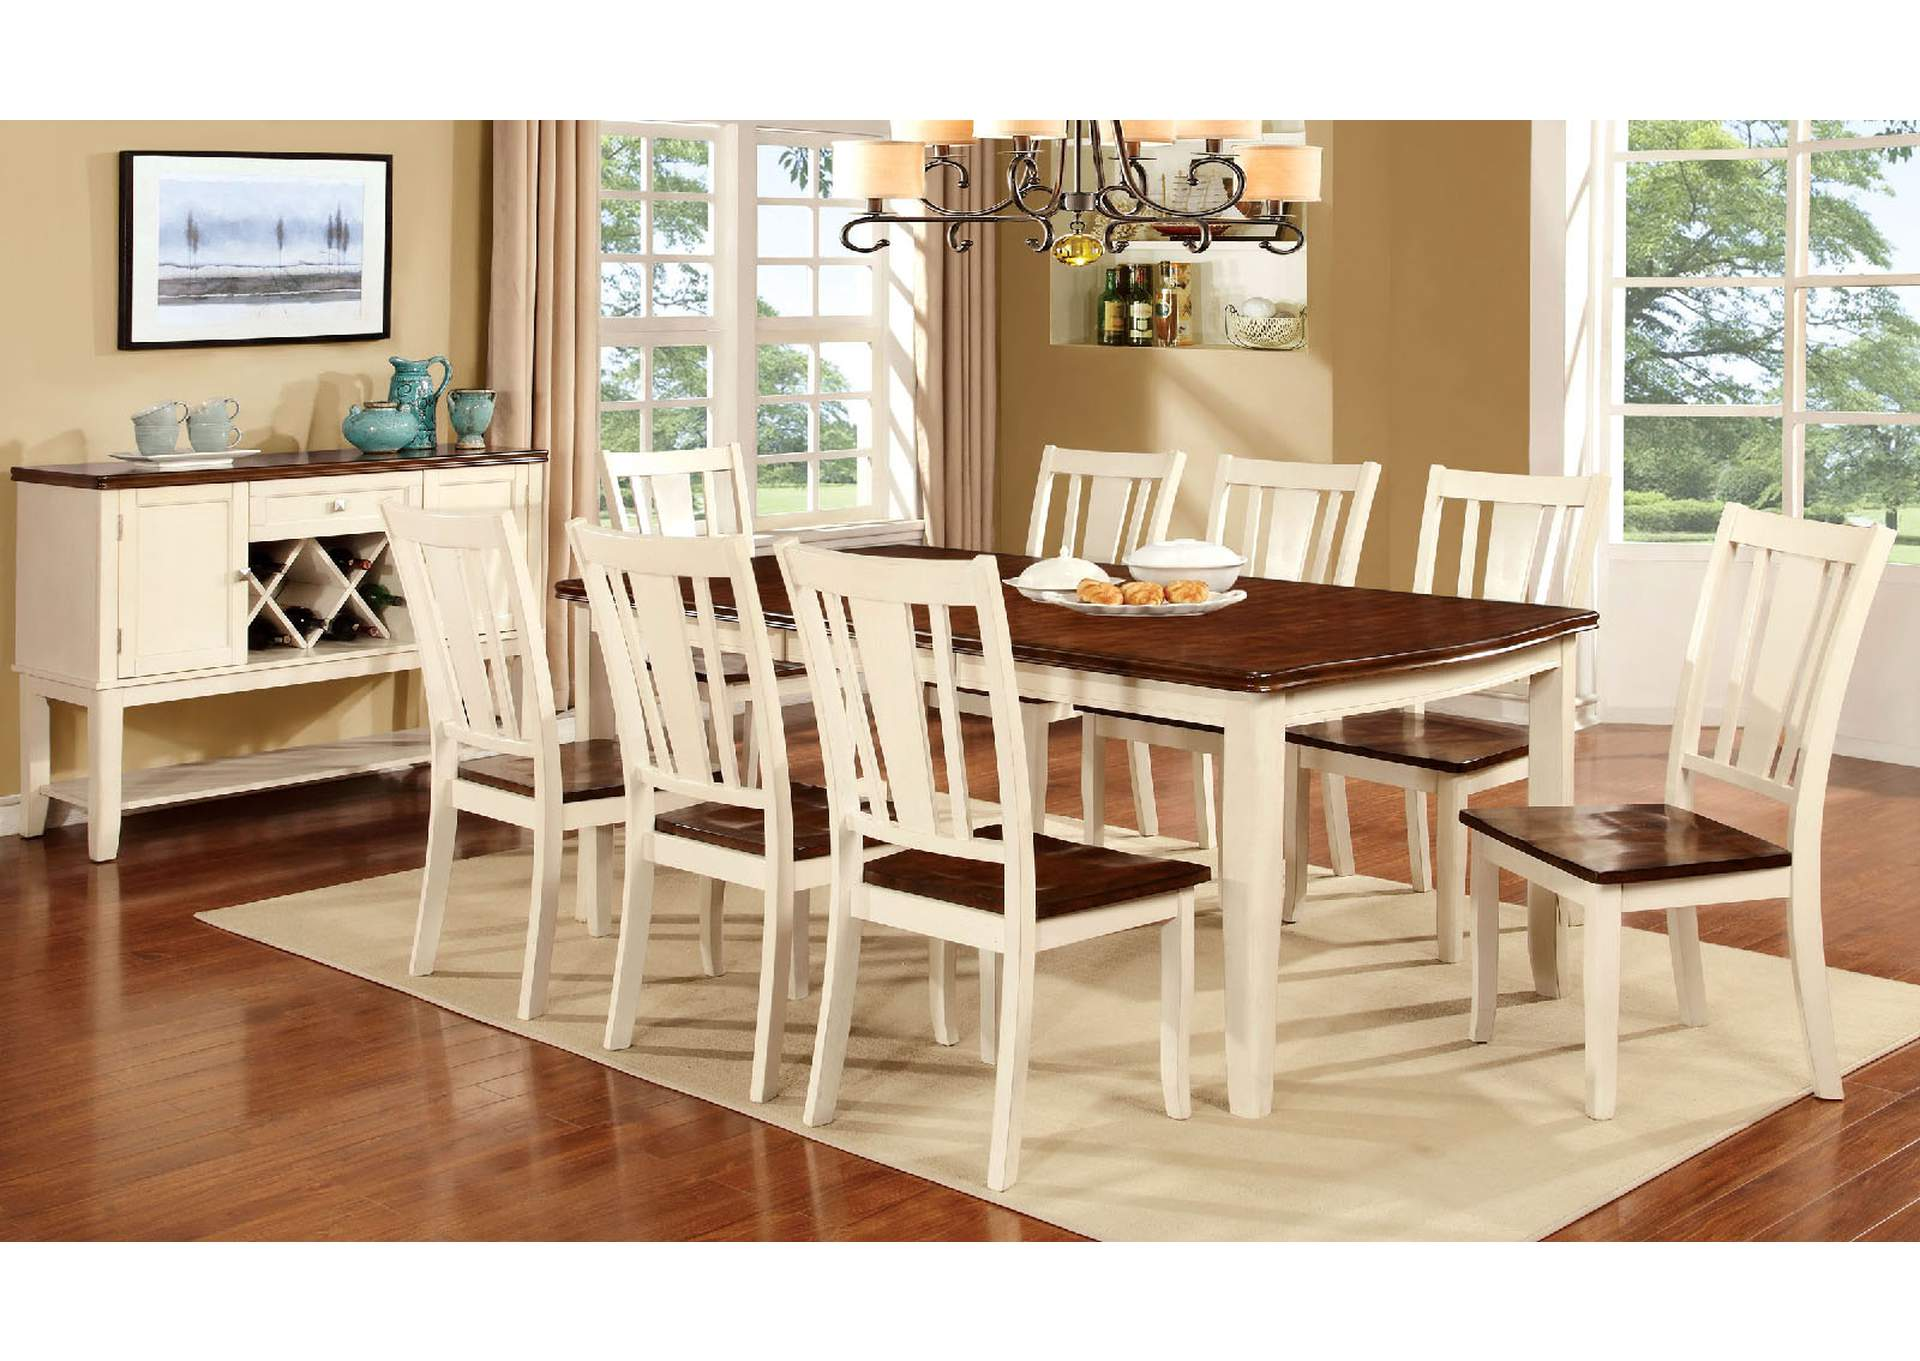 Long Island Discount Furniture Dover White Cherry Extension Dining Table W 8 Side Chairs